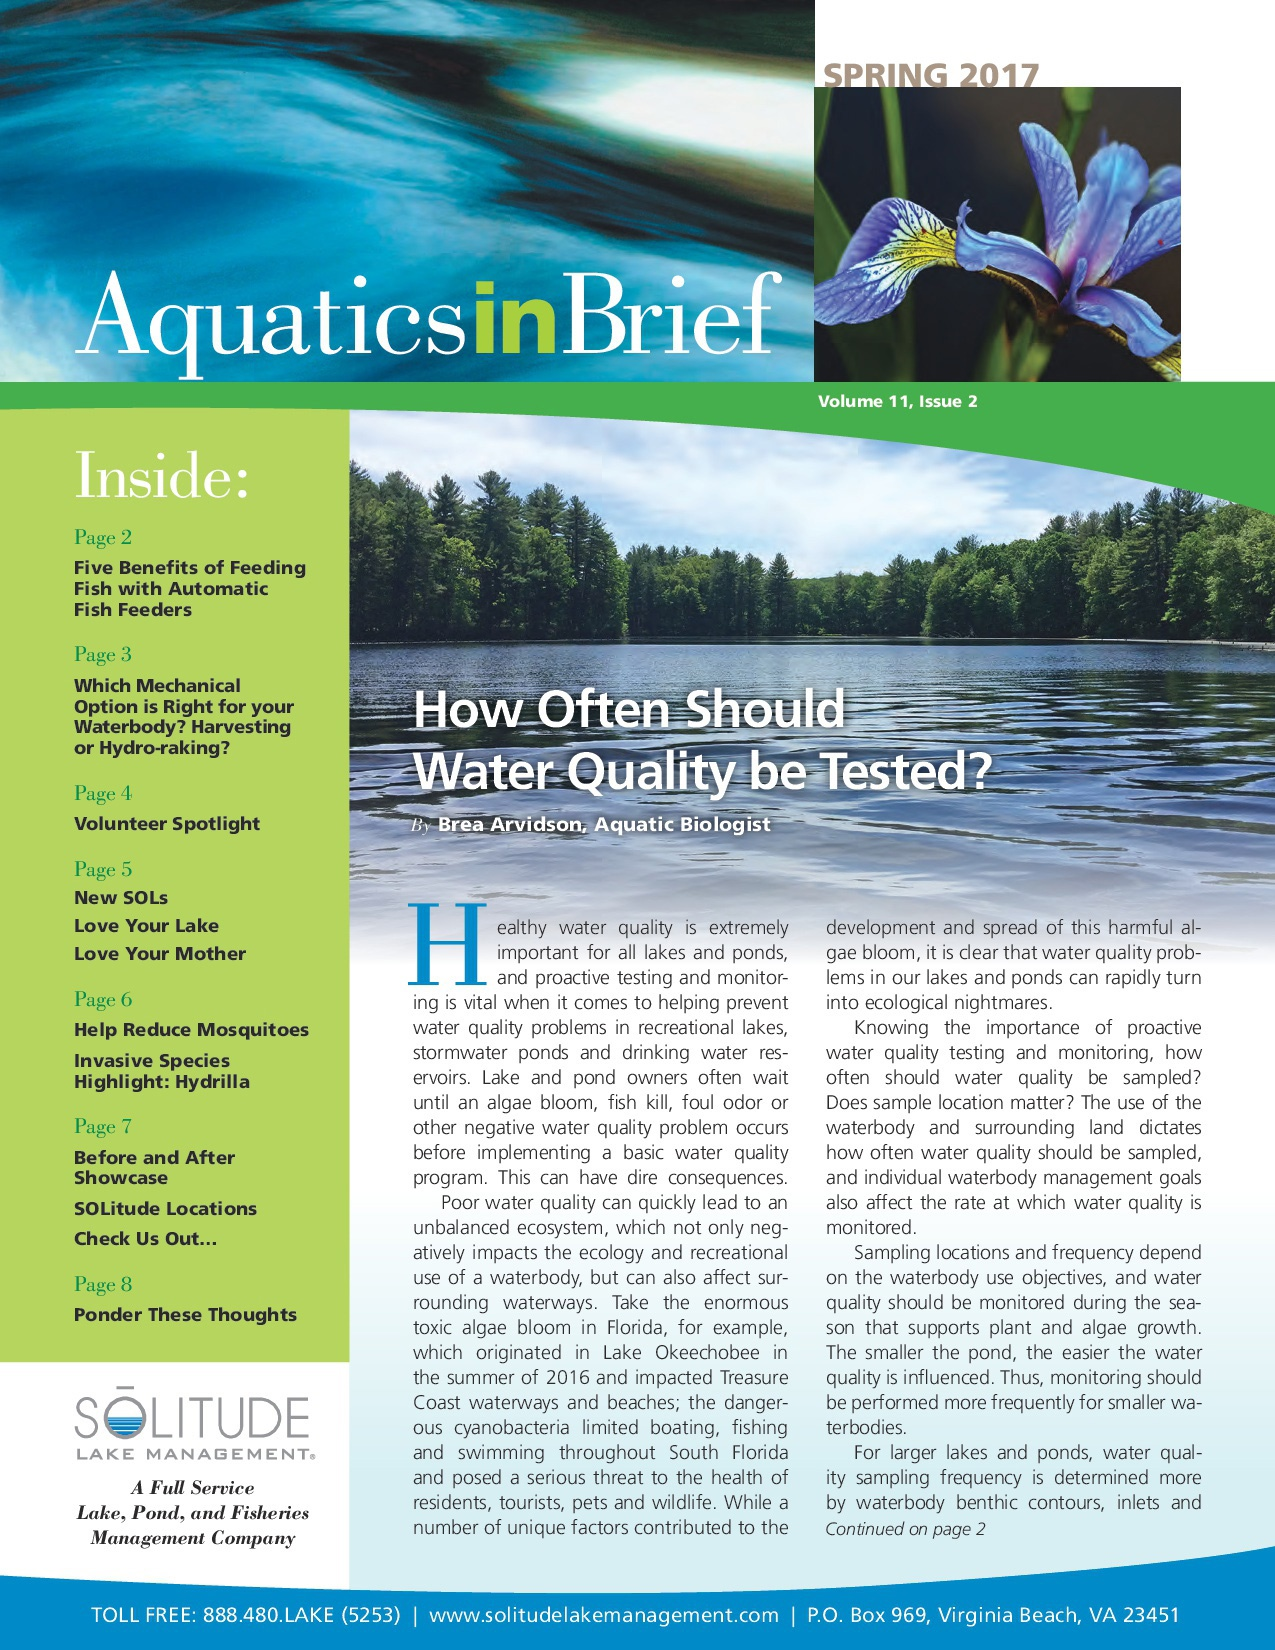 Aquatics-in-brief-spring-2017